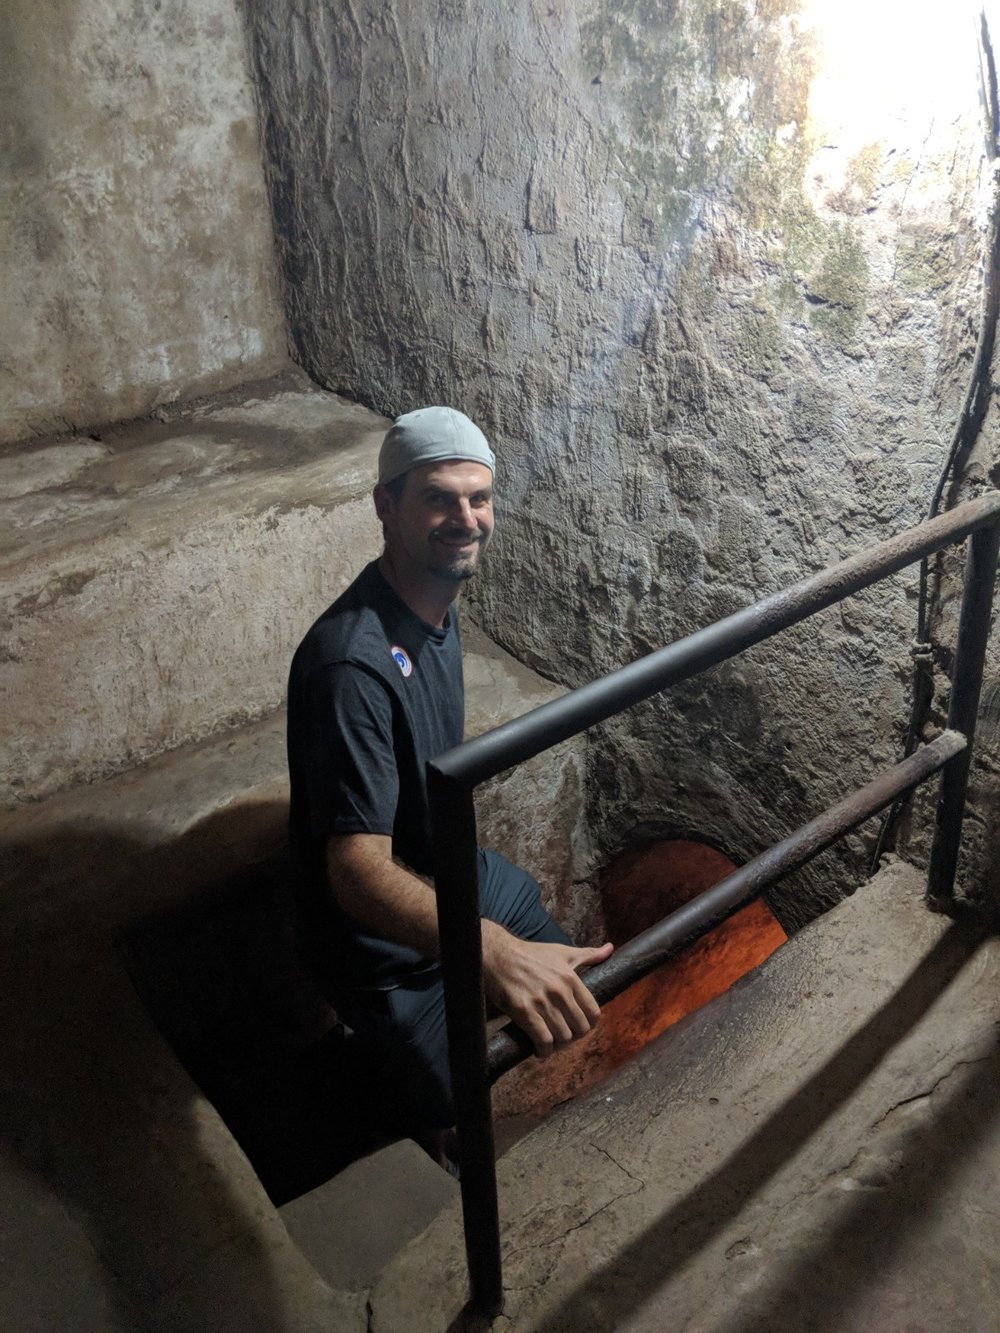 Matt at the Chi Ci Tunnels in Saigon, Vietnam. Boldlygotravel.com